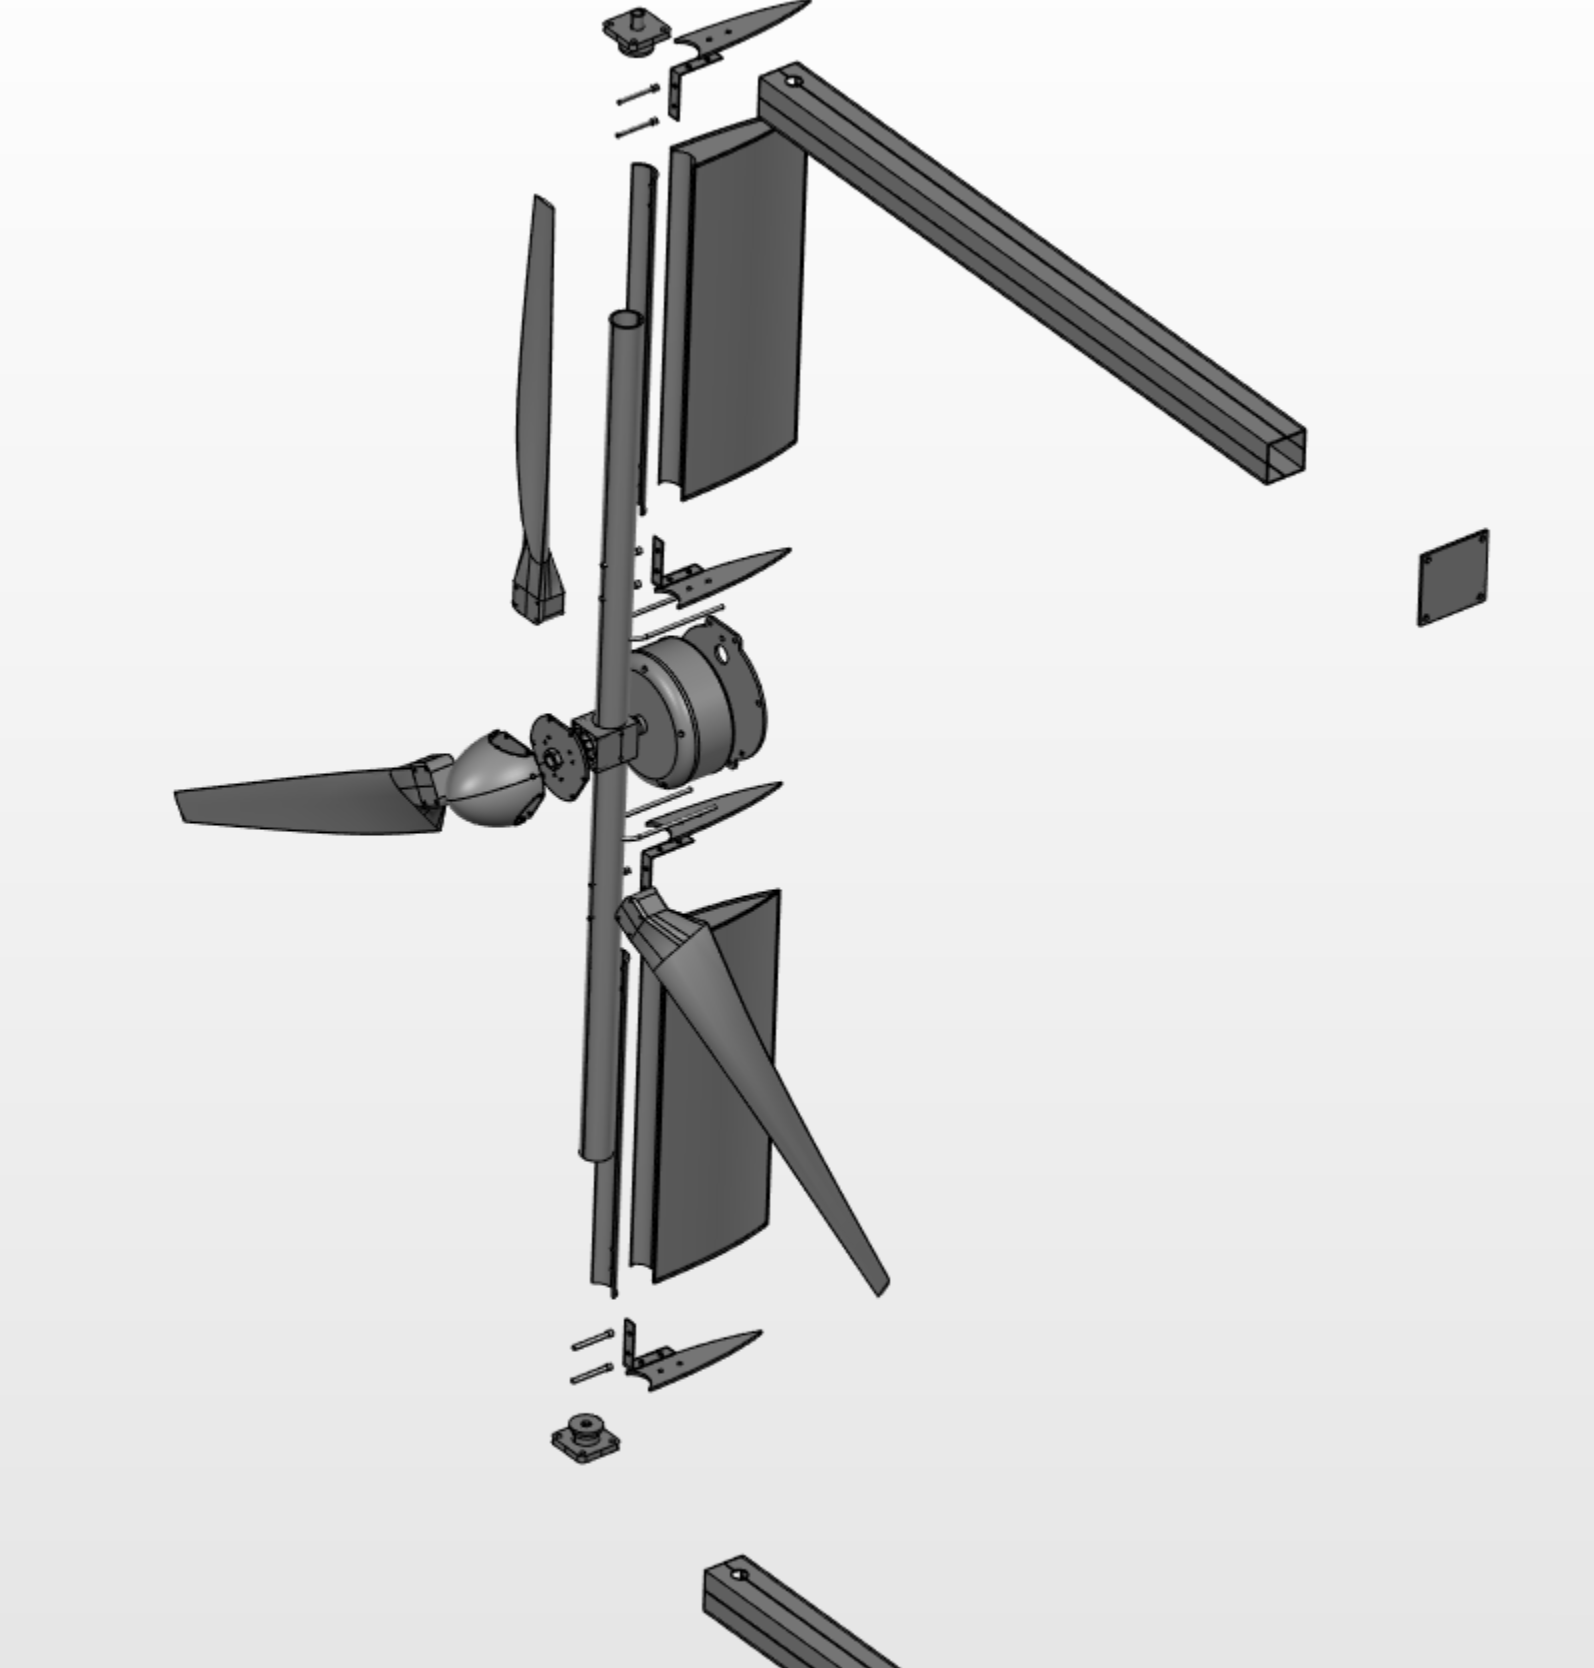 Picture of Download the 3D Model at GrabCad